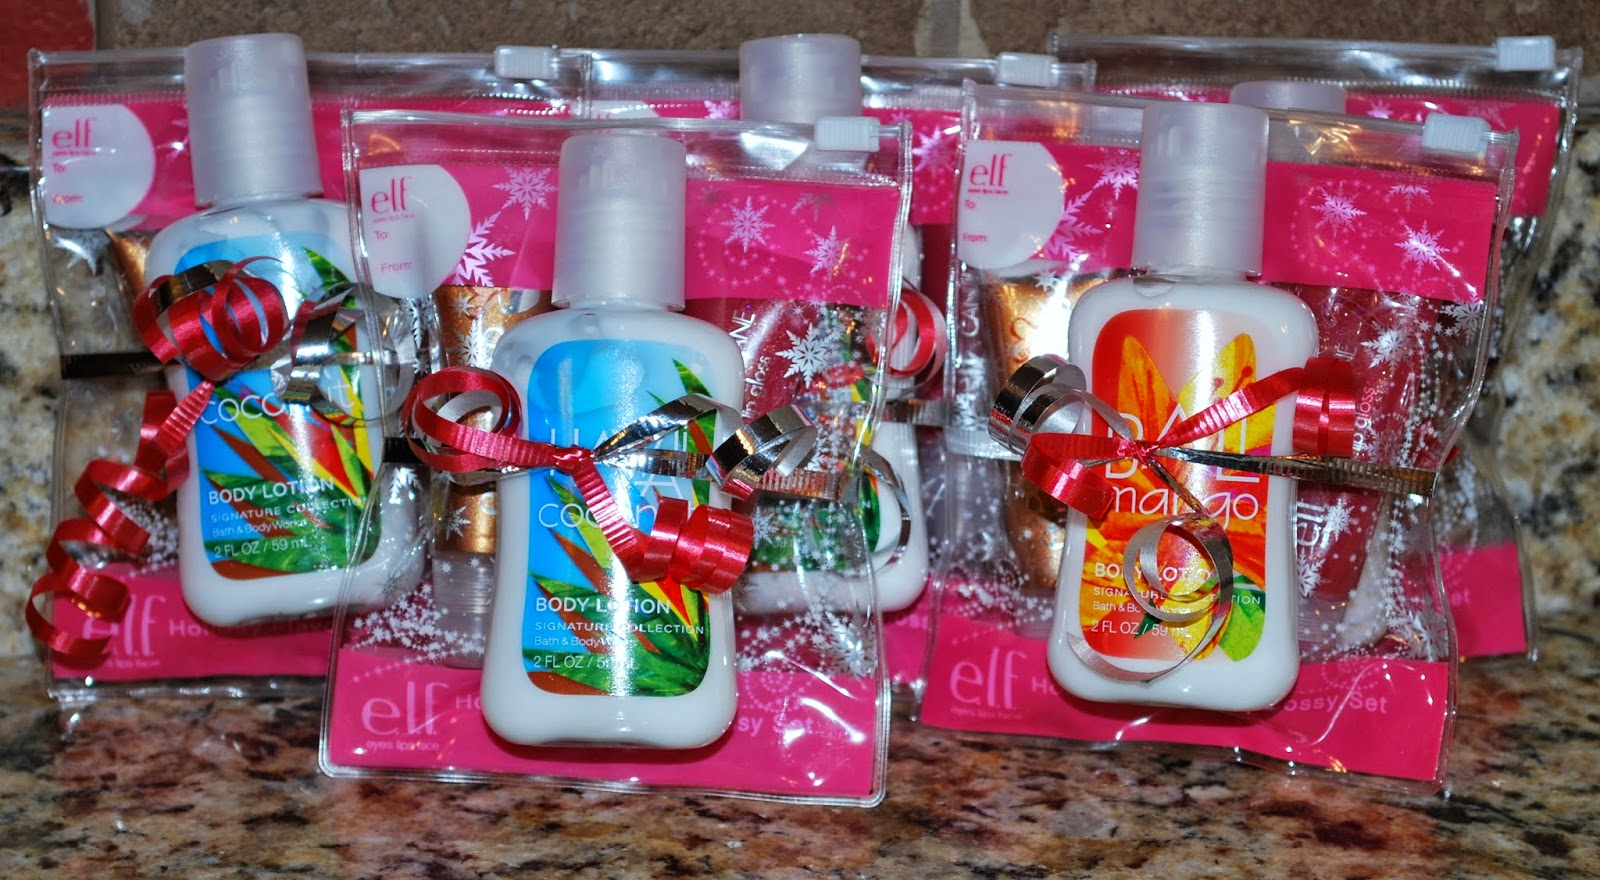 ... added a mini bottle of lotion for my daughter's friend gifts one year